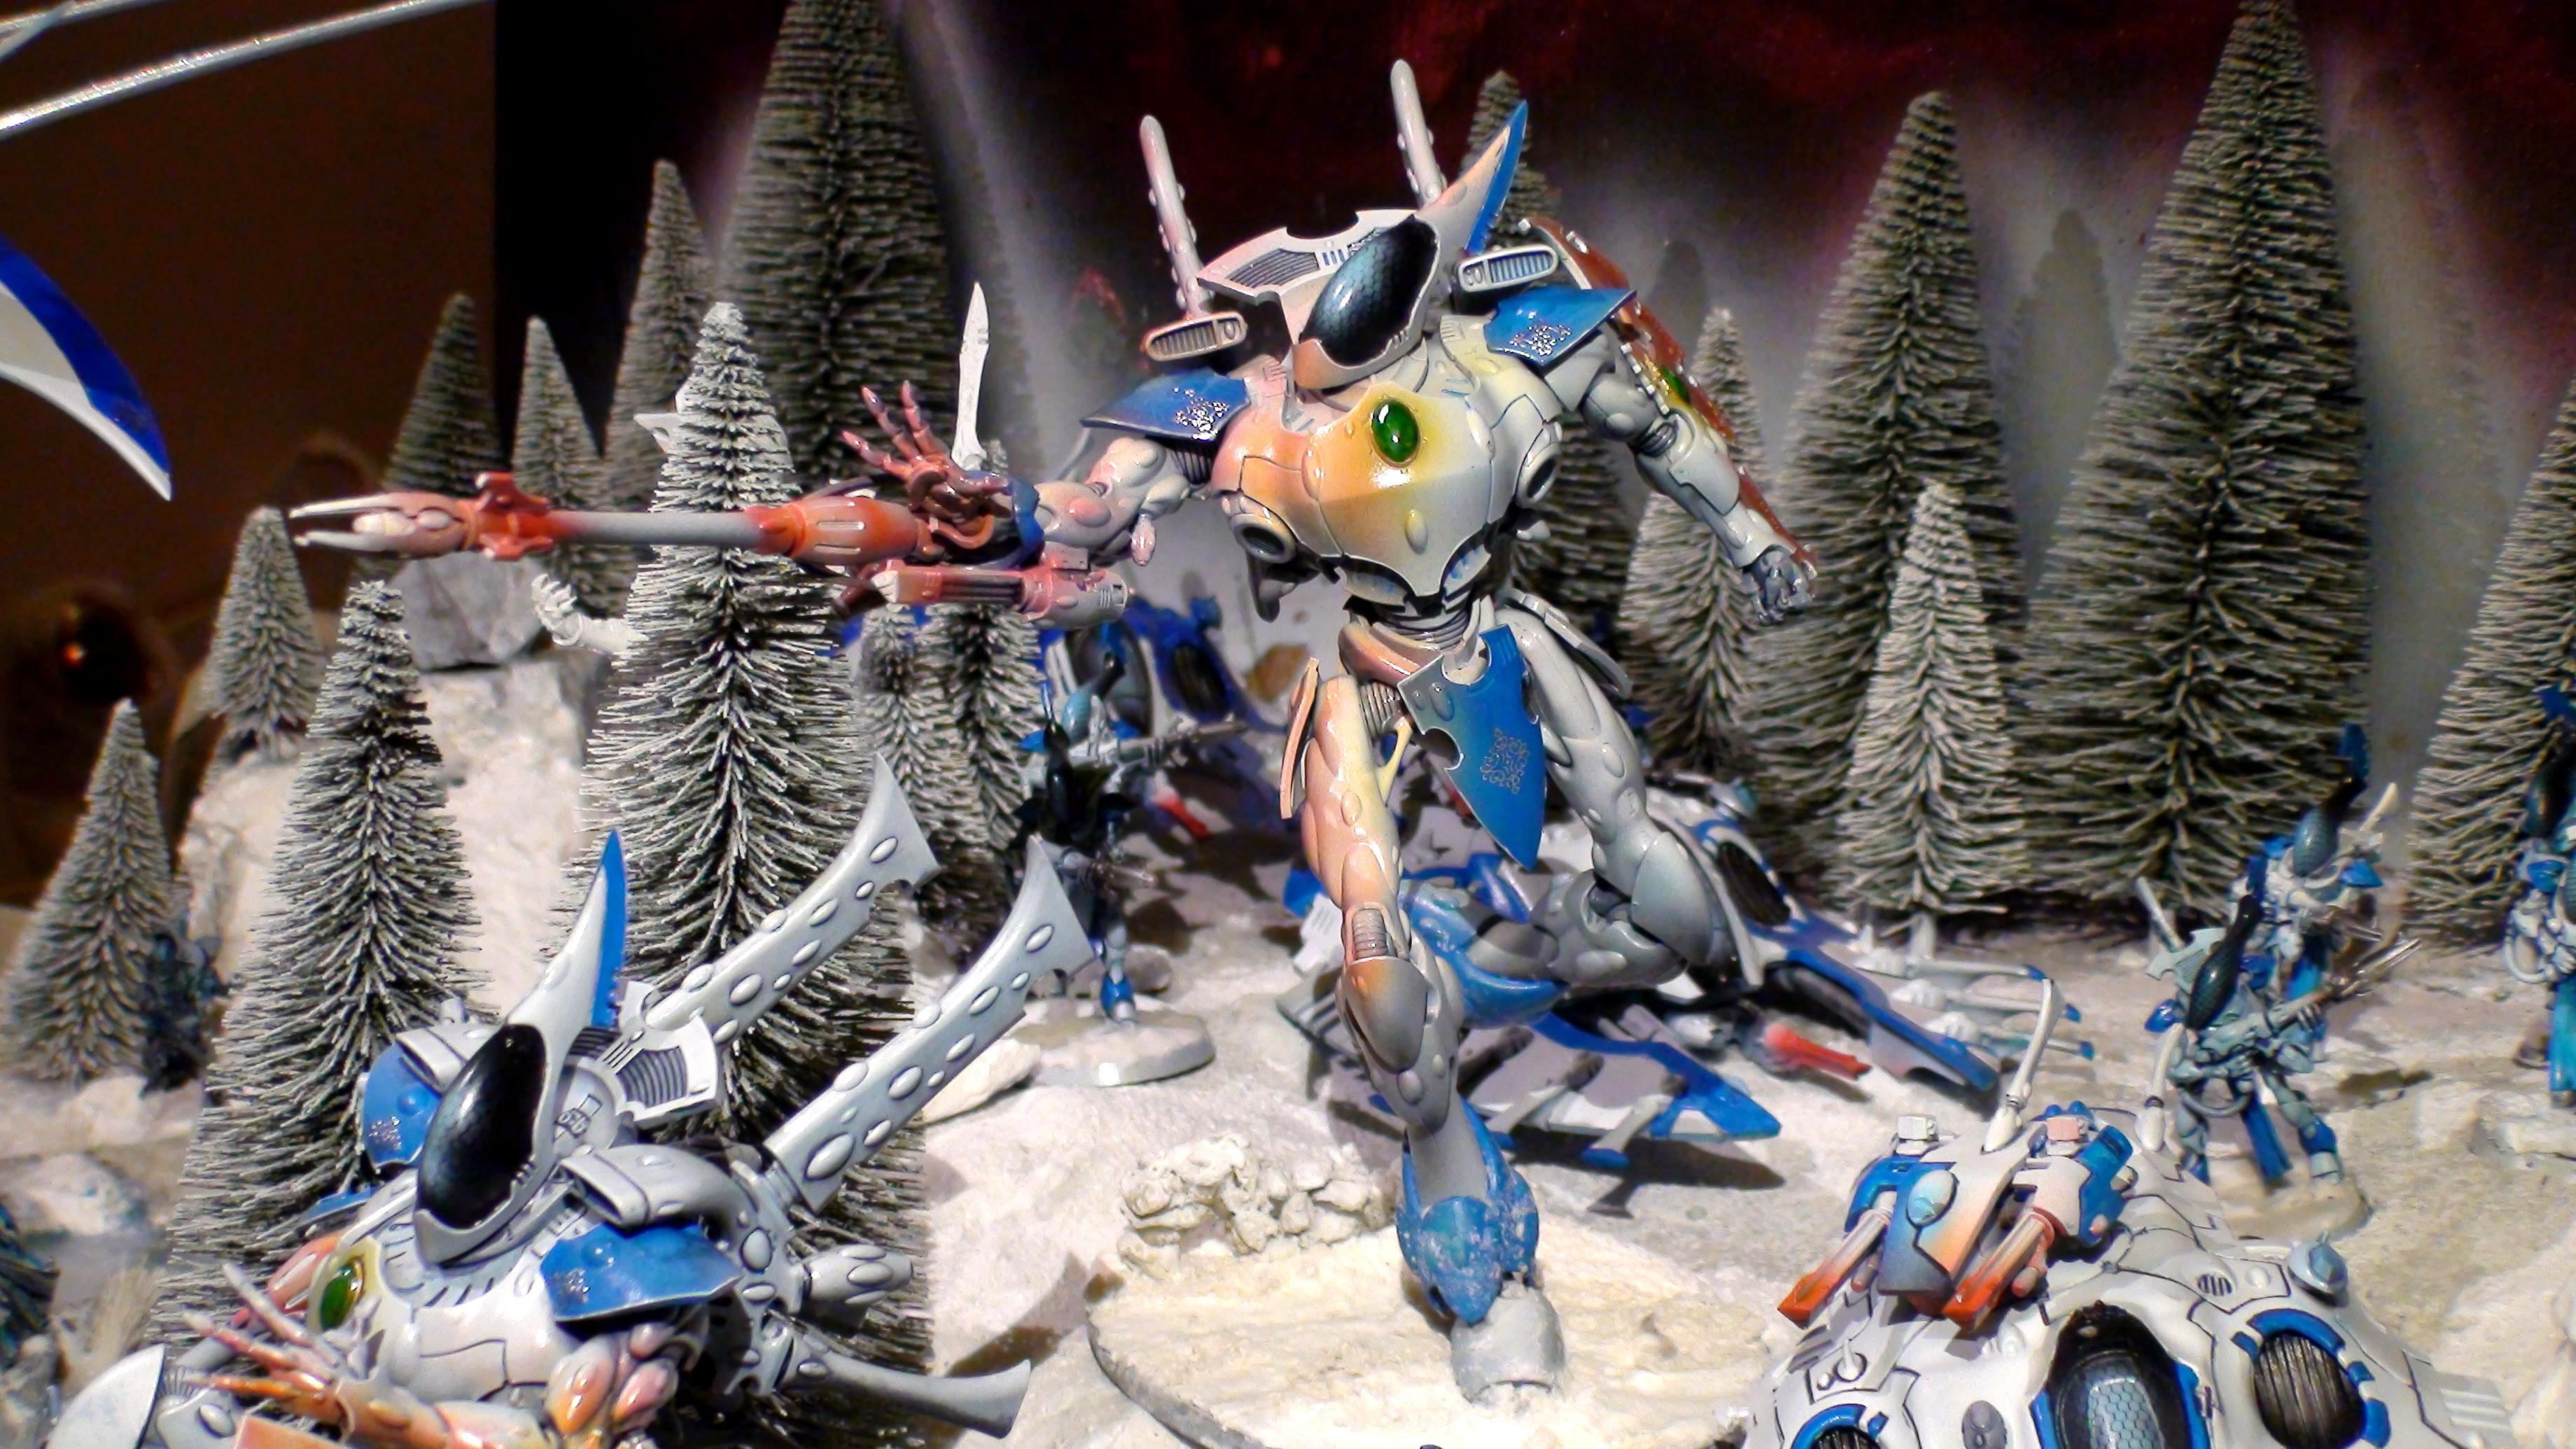 Army, Blue White, Diorama, Eldar, Eldar Wraith Army, Force, Forest, Forge World, Ghost, Host, Ilyrith, Iyanden, Iybraesil, Iybraezil, Phoenix Lord, Shadow, Snow, Spectres, Spirit, Spirit Host, Spirit Only, Warhammer 40,000, Warhammer Fantasy, Waveserpent, Winter, Wraith, Wraith Host, Wraith Only, Wraithguard, Wraithknight, Wraithknights, Wraithlord